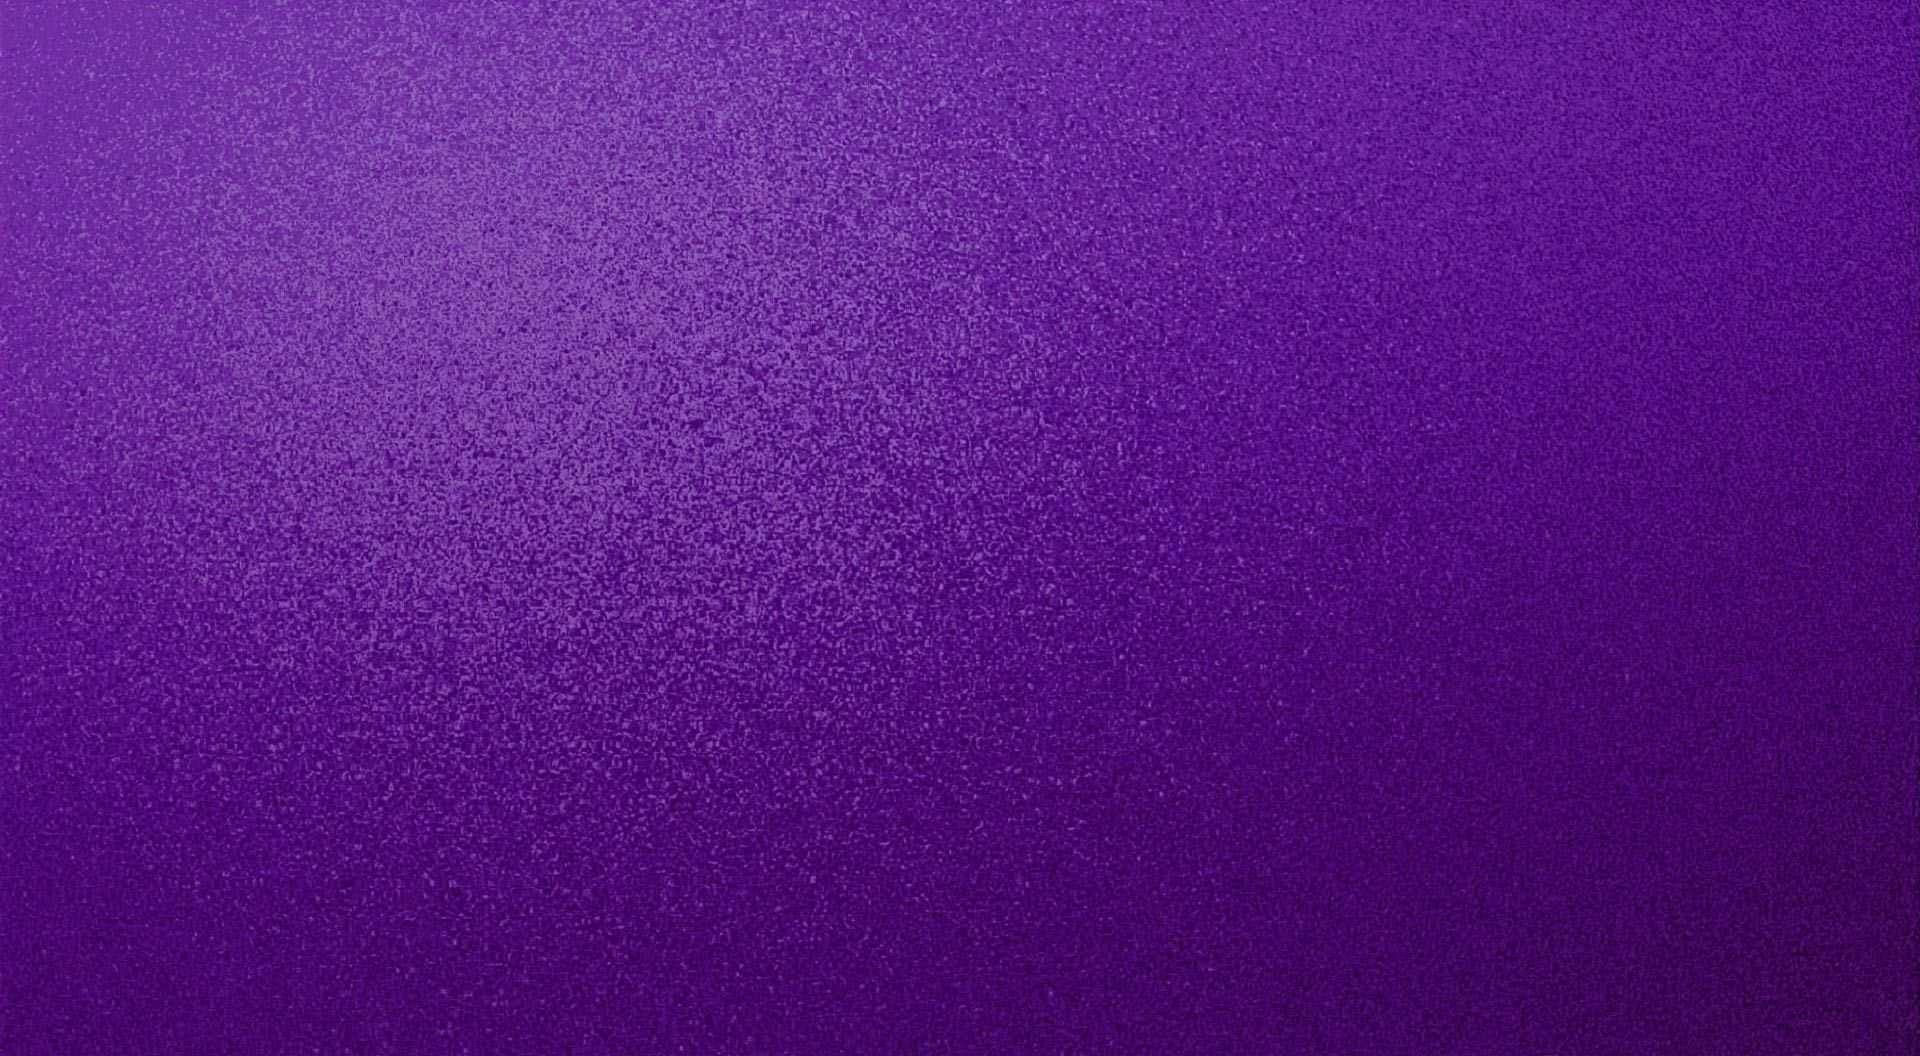 Cute Purple Background